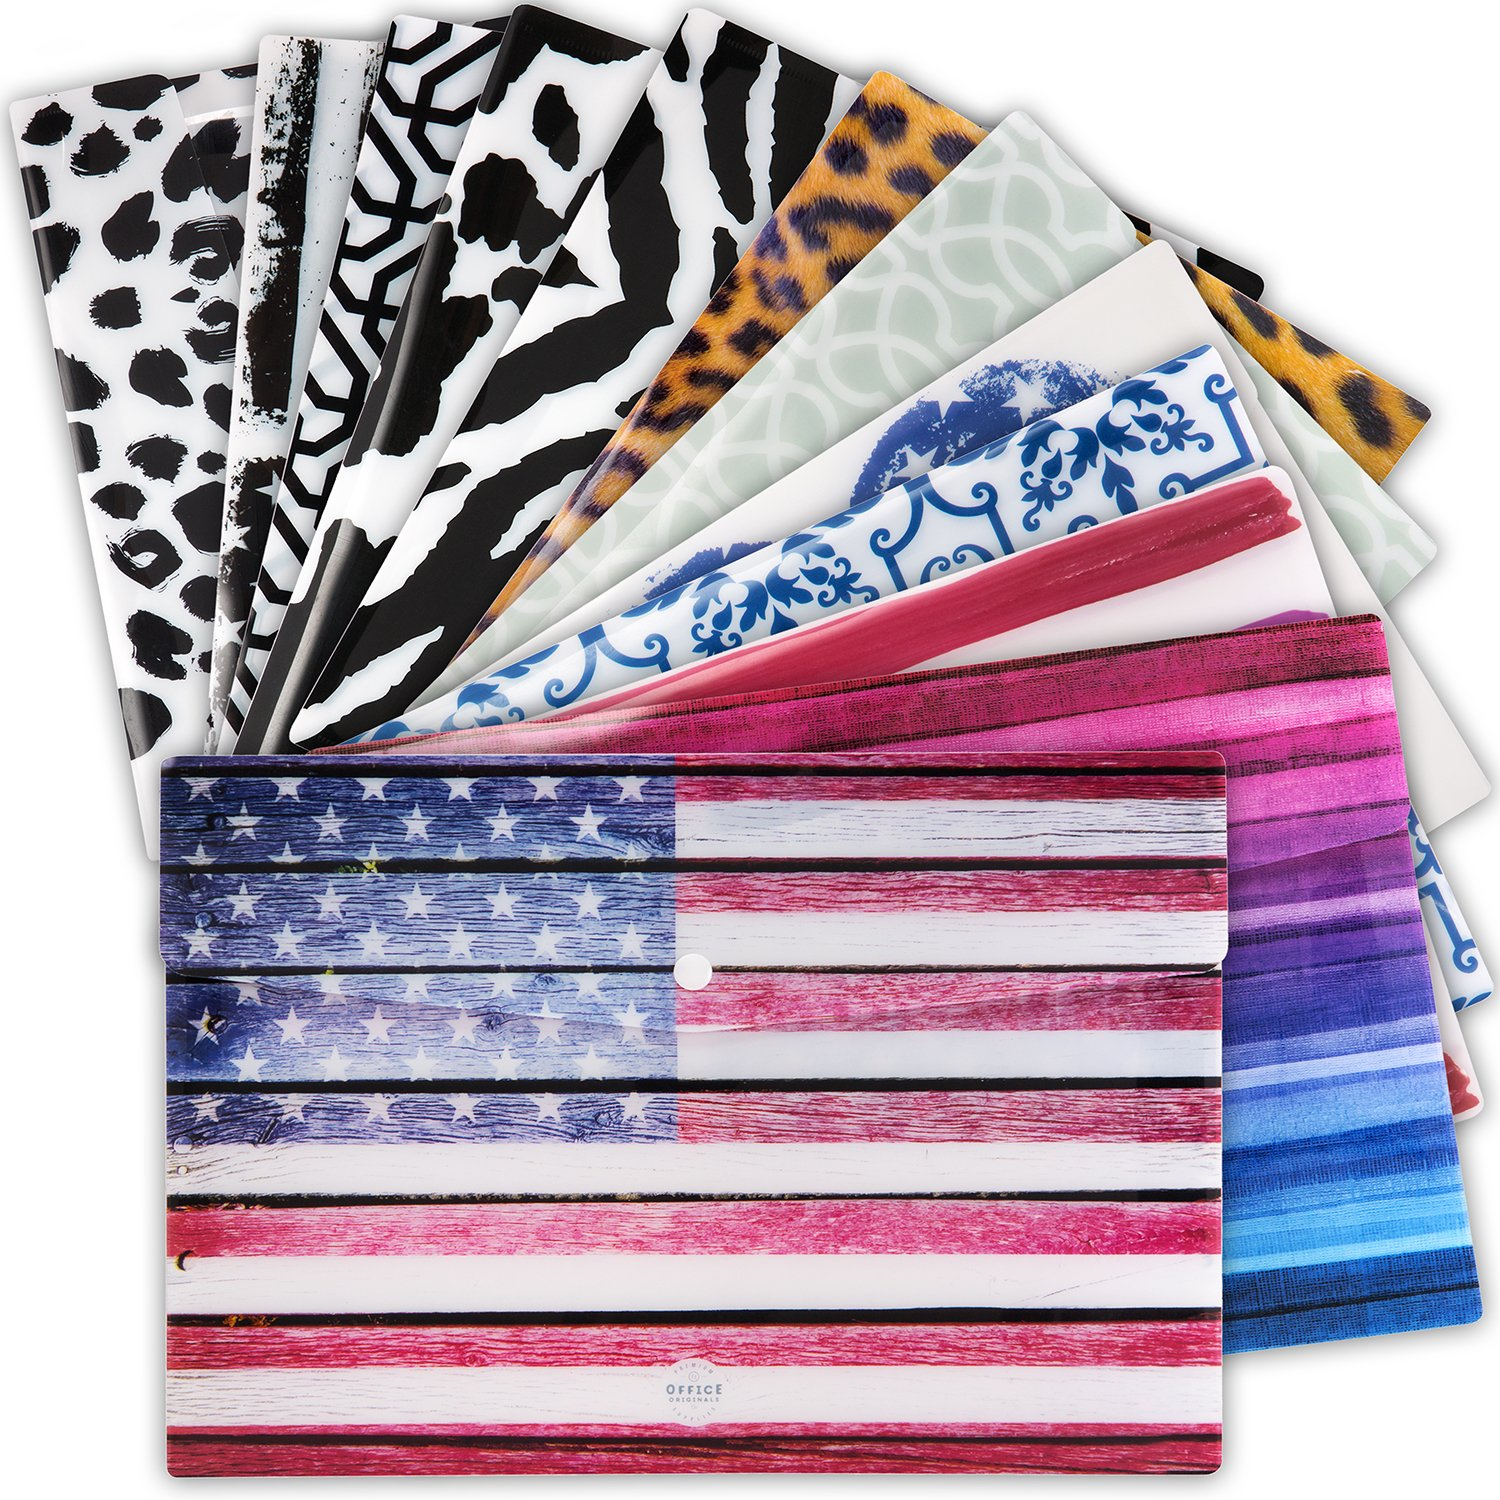 Filing Envelopes Poly Envelope Folder with Snap Button – Extra Durable – Set of 12 Plastic File Folders in Unique Designs